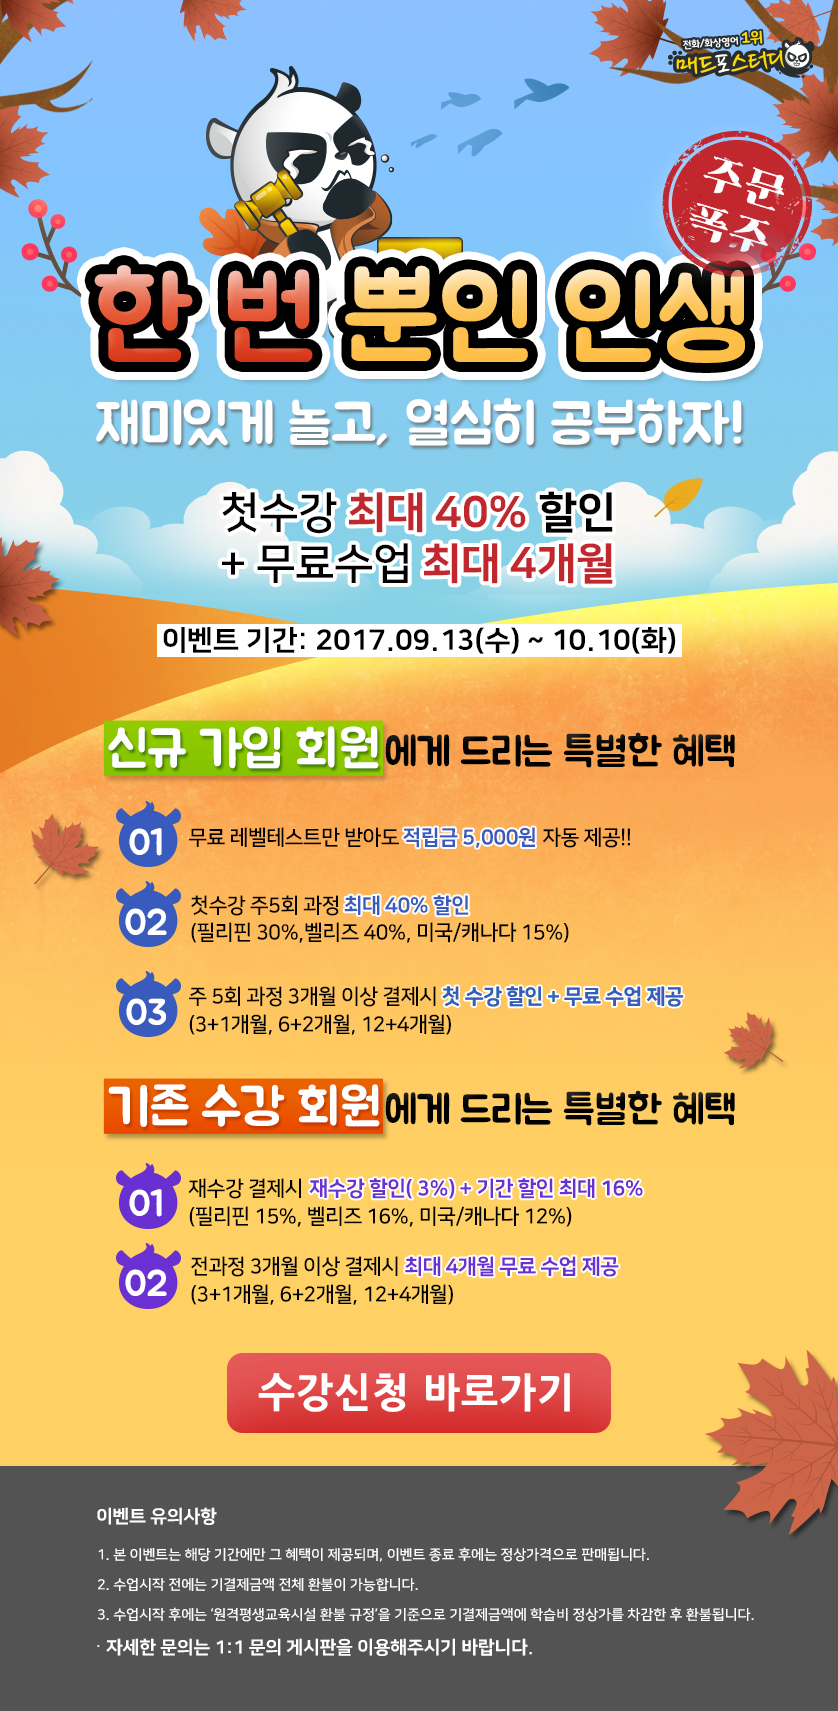 event 170807_3.png